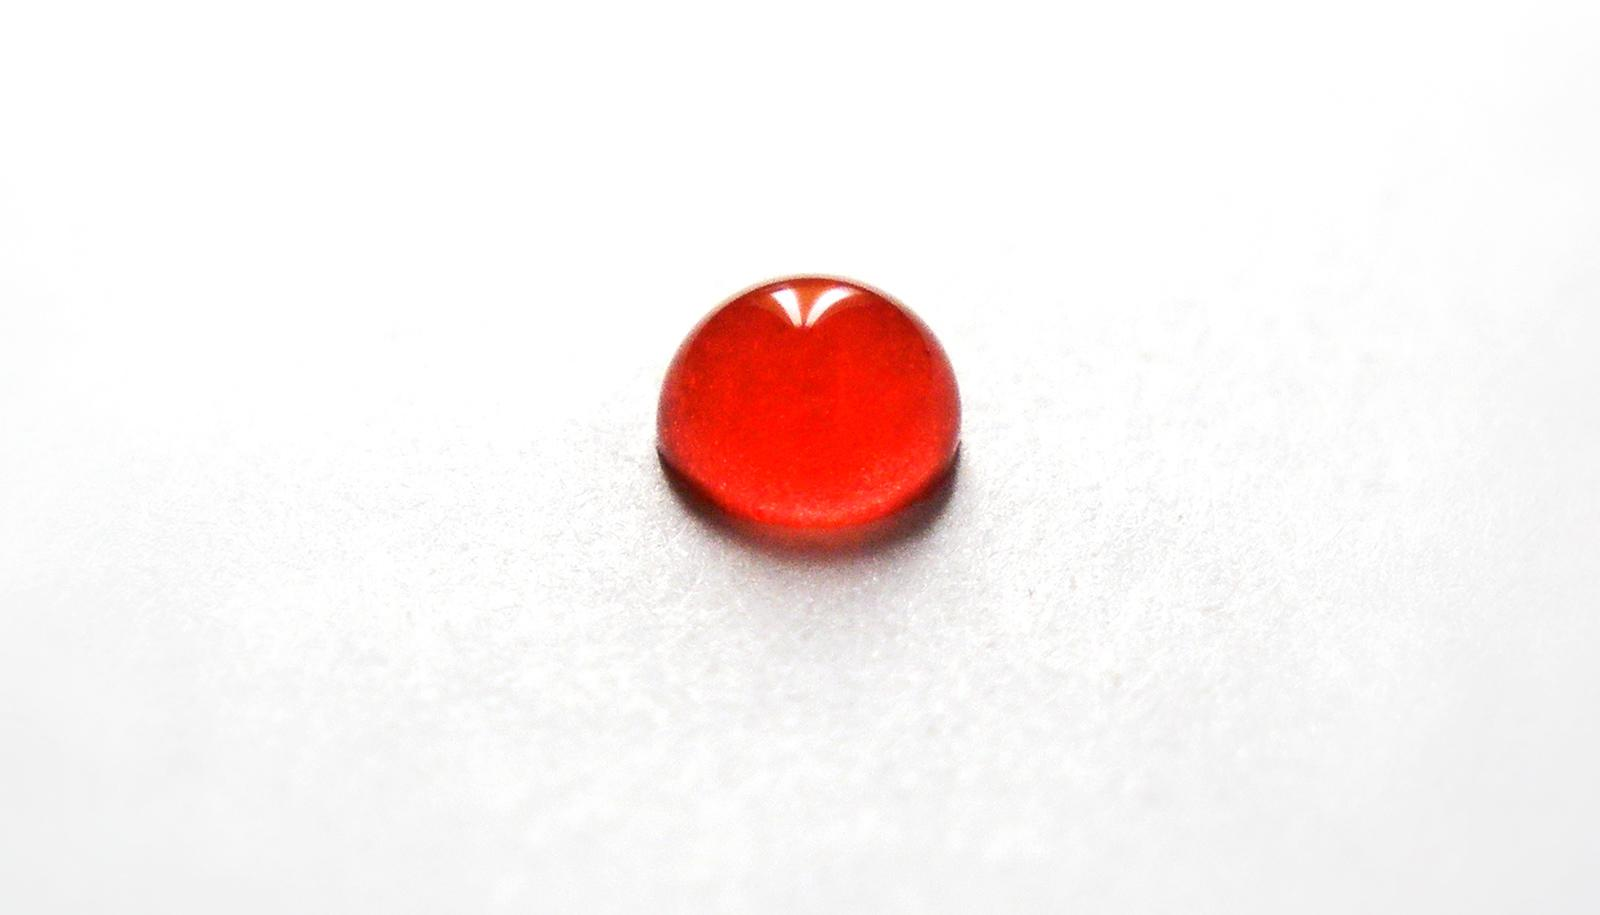 A drop of blood sits on a white surface